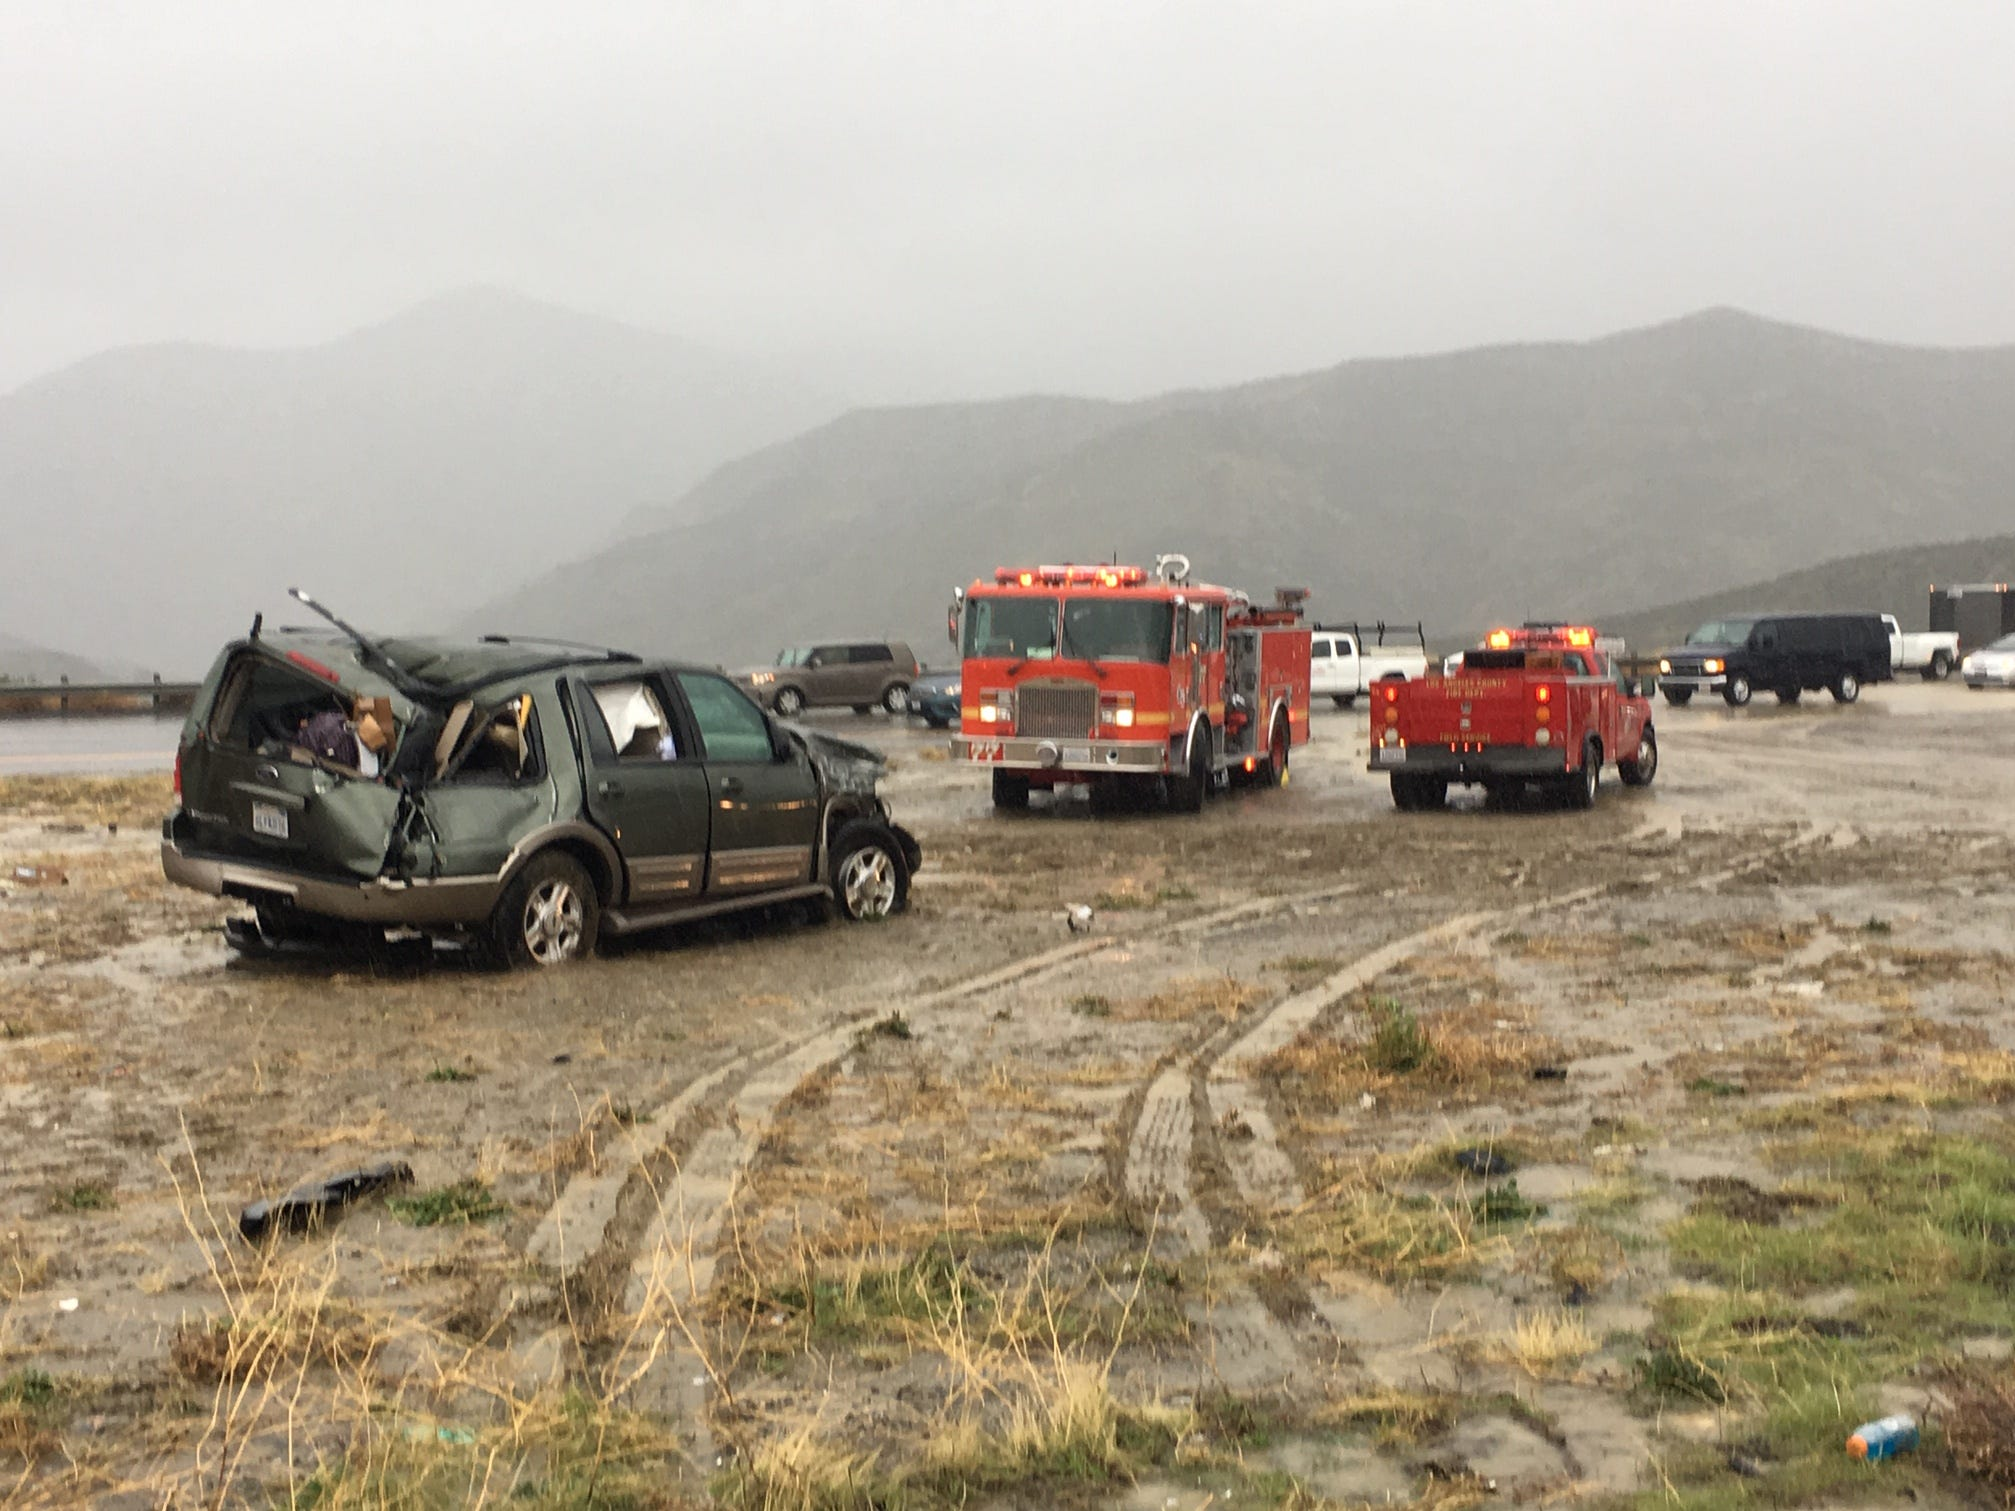 The Ford Expedition, left, that reportedly ran into a Ventura County Sheriff's search and rescue team comes to rest in a center median. The crash killed one team member and injured three, when the group had stopped to help at an earlier accident on Interstate 5 Saturday.